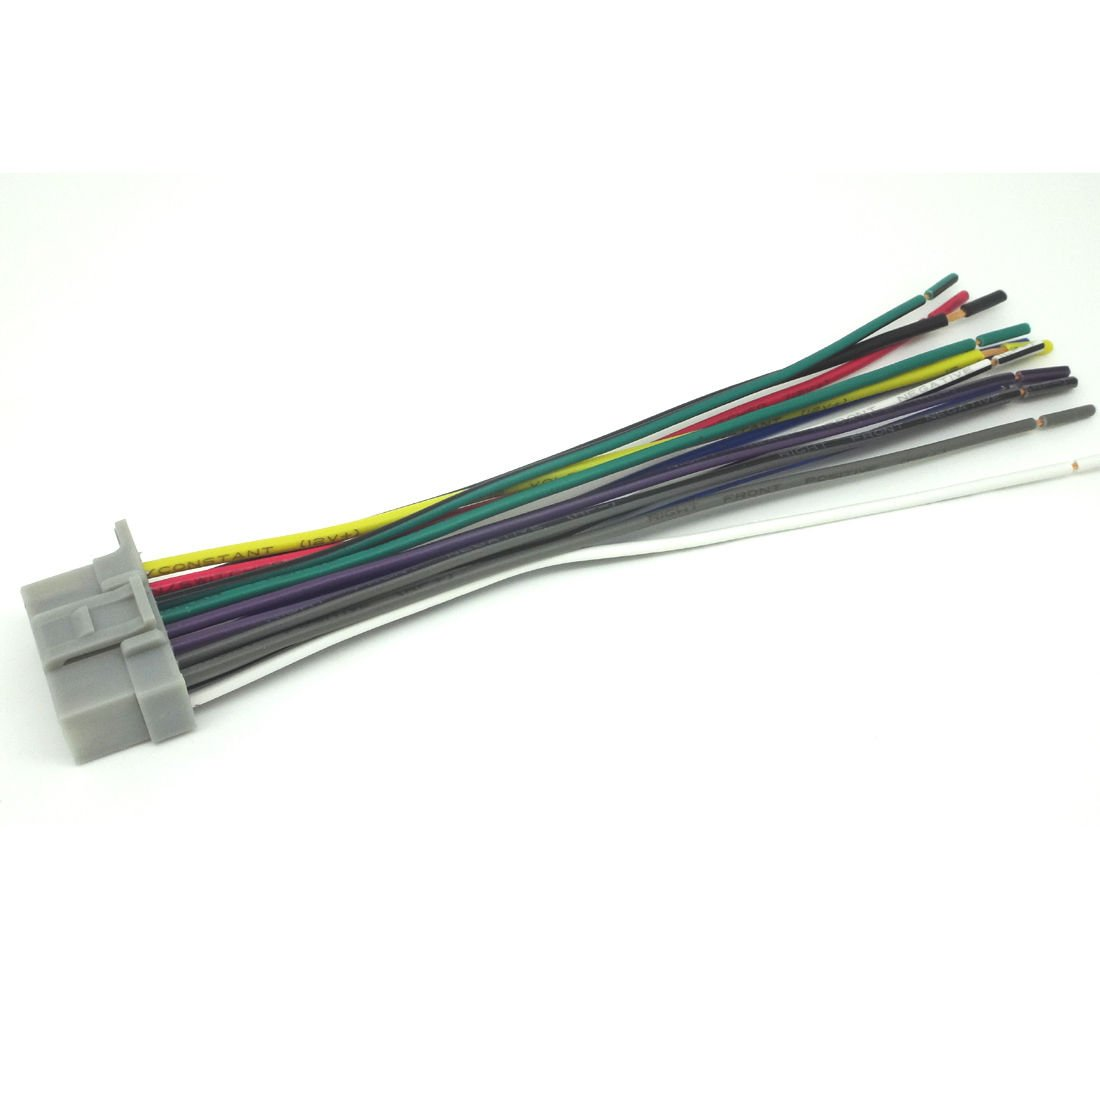 51vfQ2rLMNL._SL1100_ amazon com 16pin wire harness for panasonic cq c1303u cq c1304u panasonic cq-c1305u wiring harness at nearapp.co